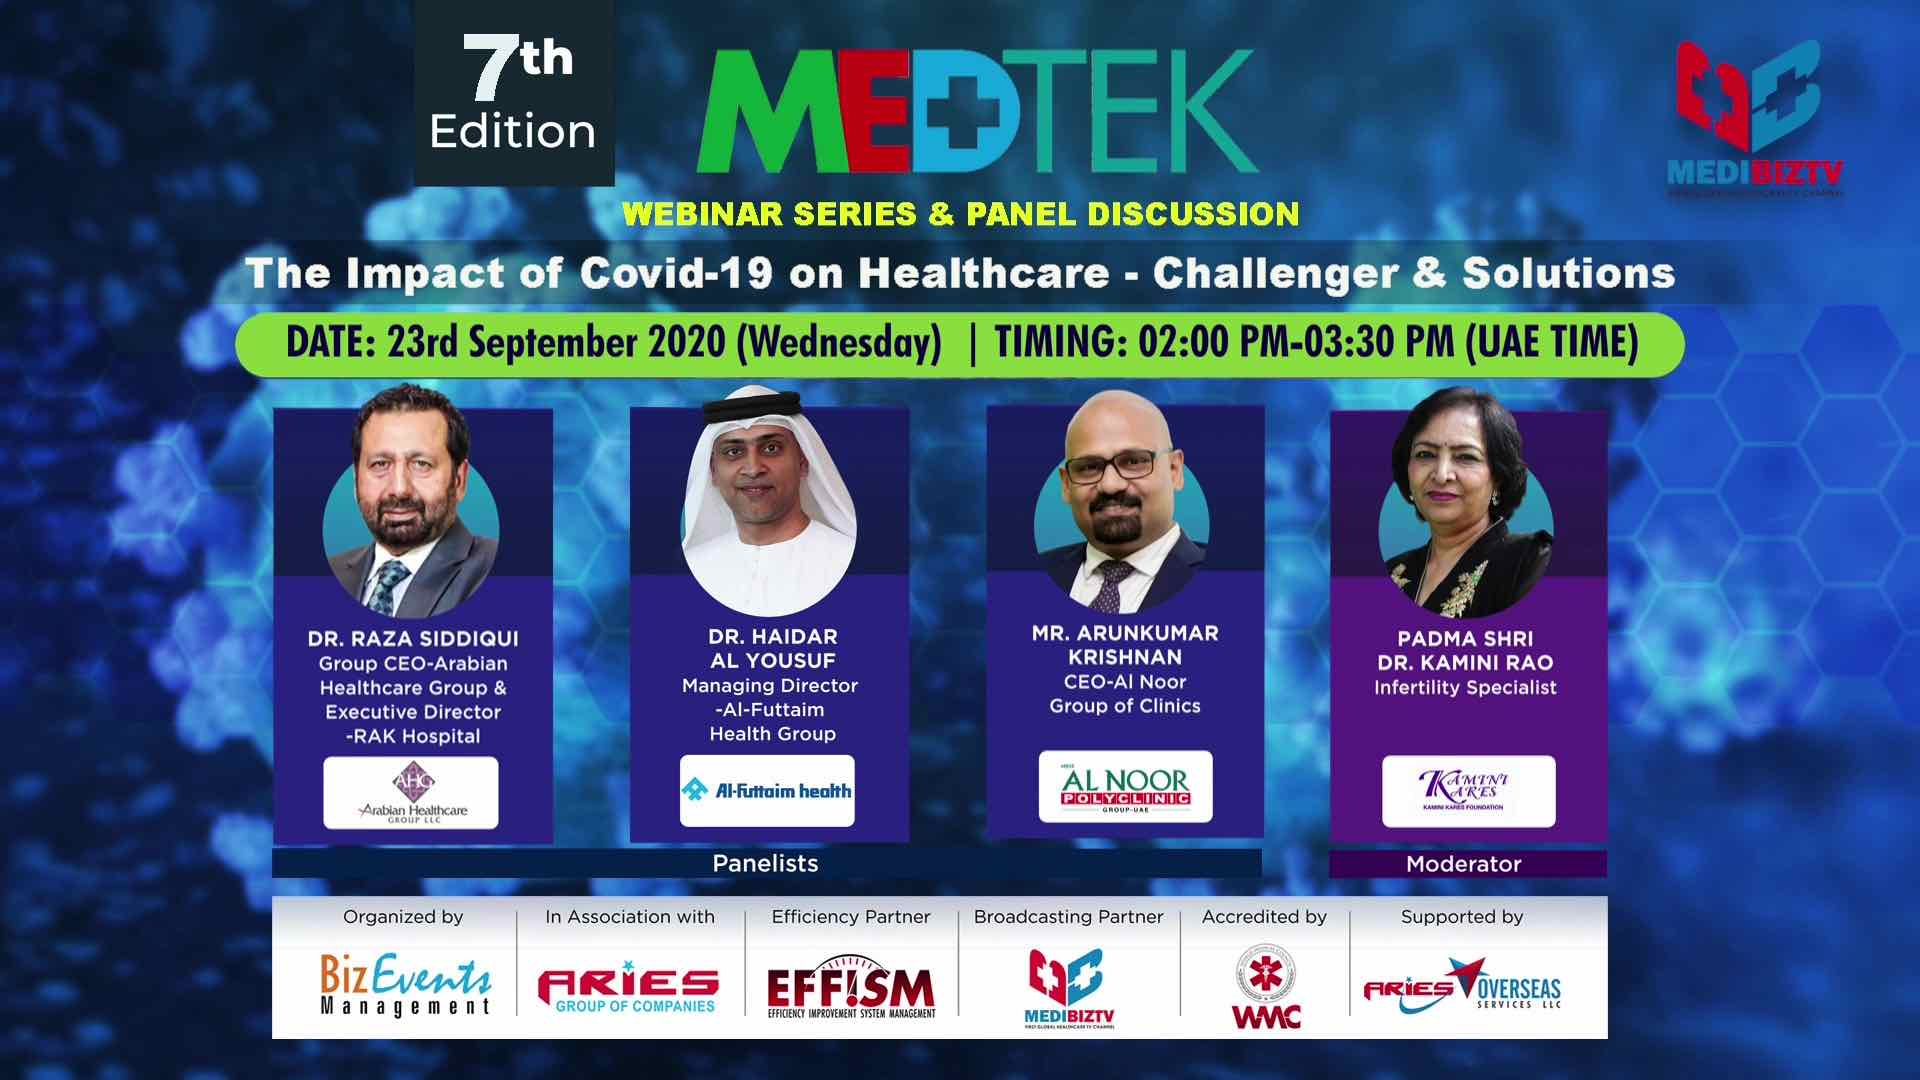 7th Edition MEDTEK_Webinar Series & Panel Discussion